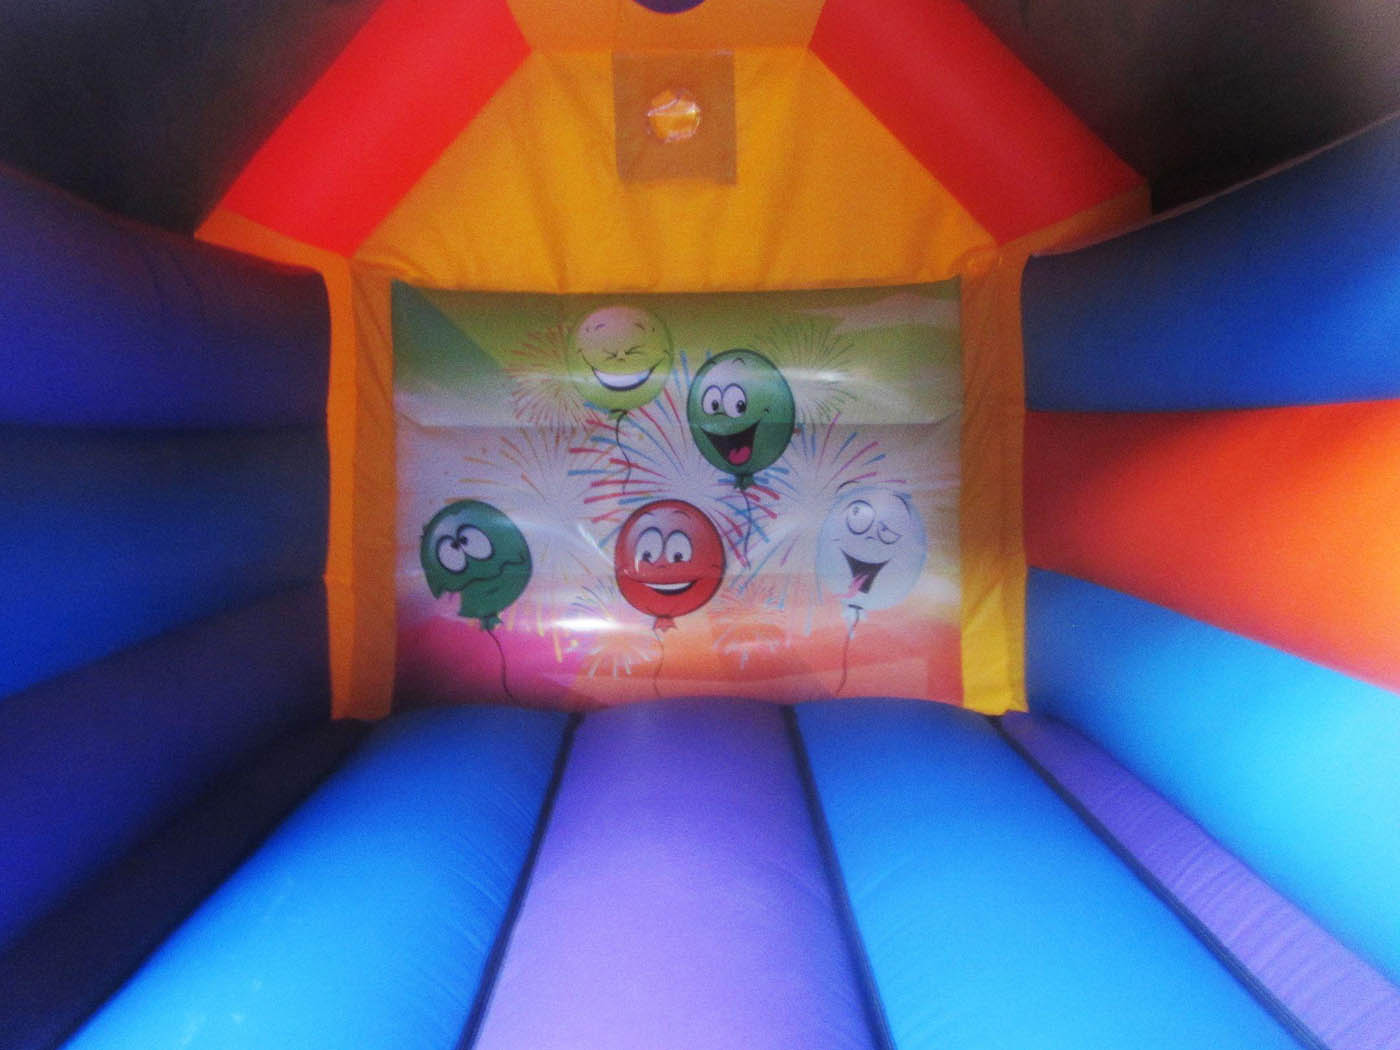 Party Themed Artwork on Bouncy Castle